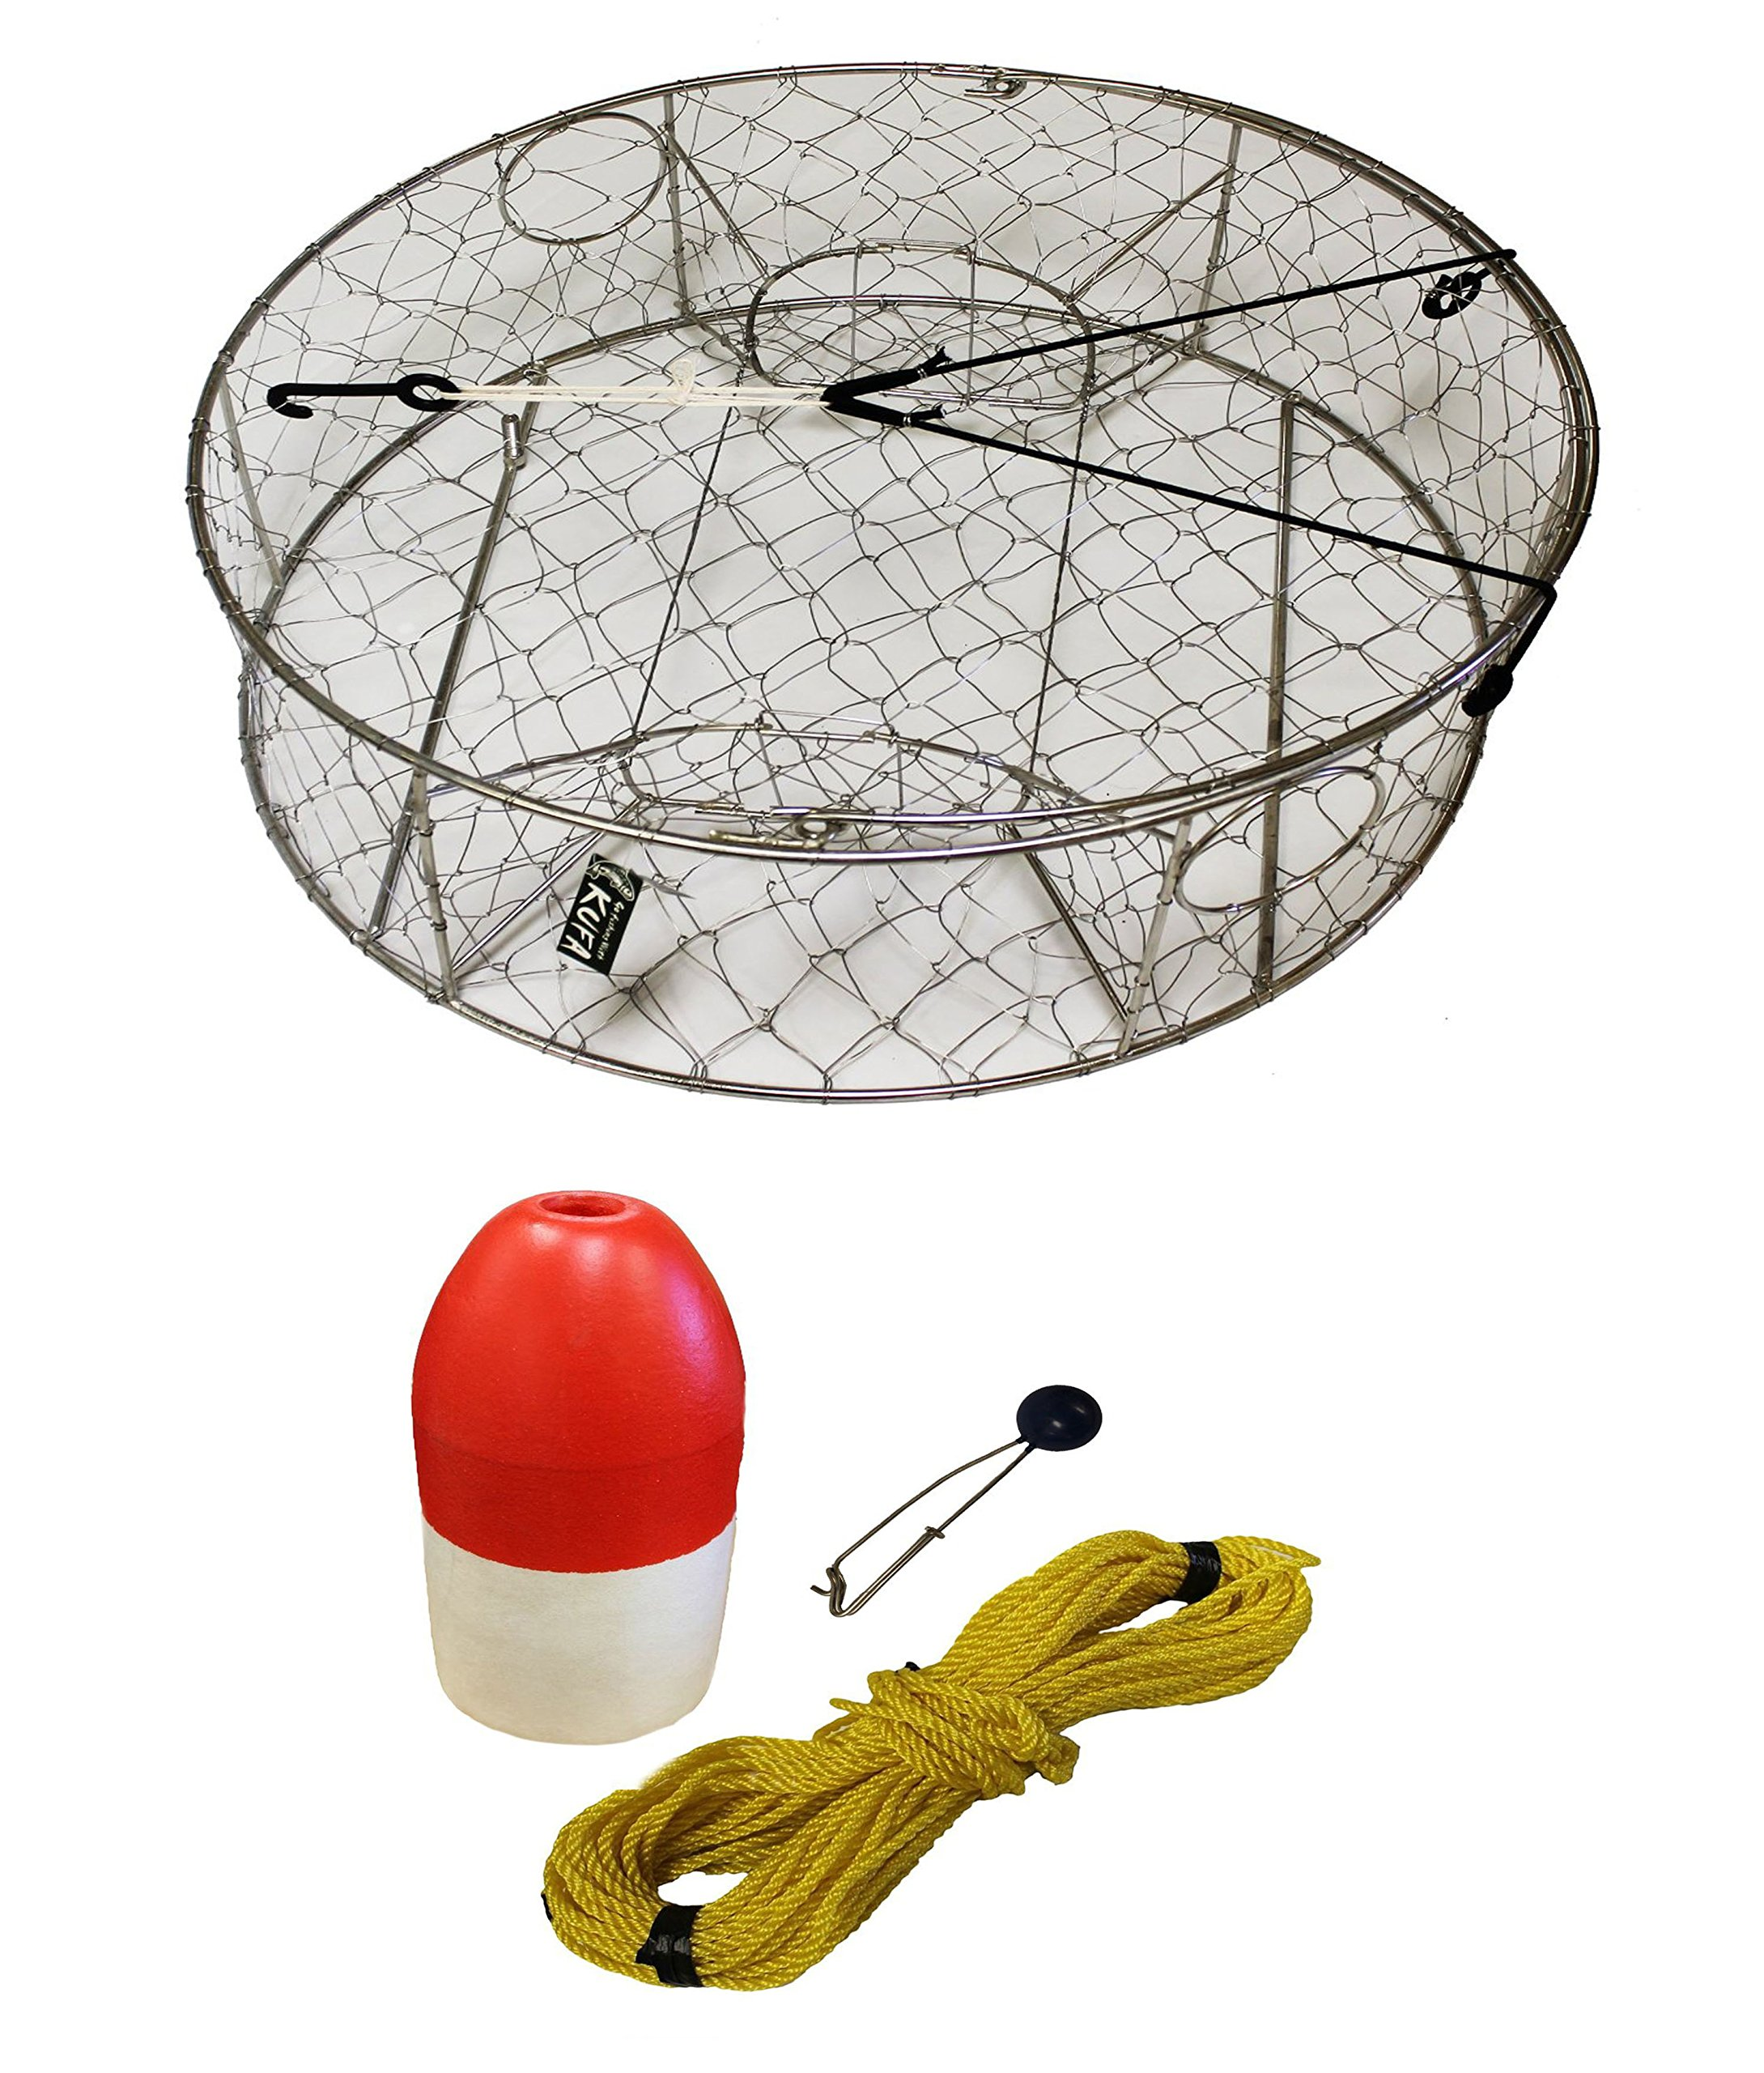 KUFA Stainless Steel Crab Trap with Zinc Anode, 1/4'' x 100' Poly rope with Clip on Line Weight(10oz) and 6''x14'' Red/White Float Combo (CT100+FWP103+ZIN1) by KUFA Sports